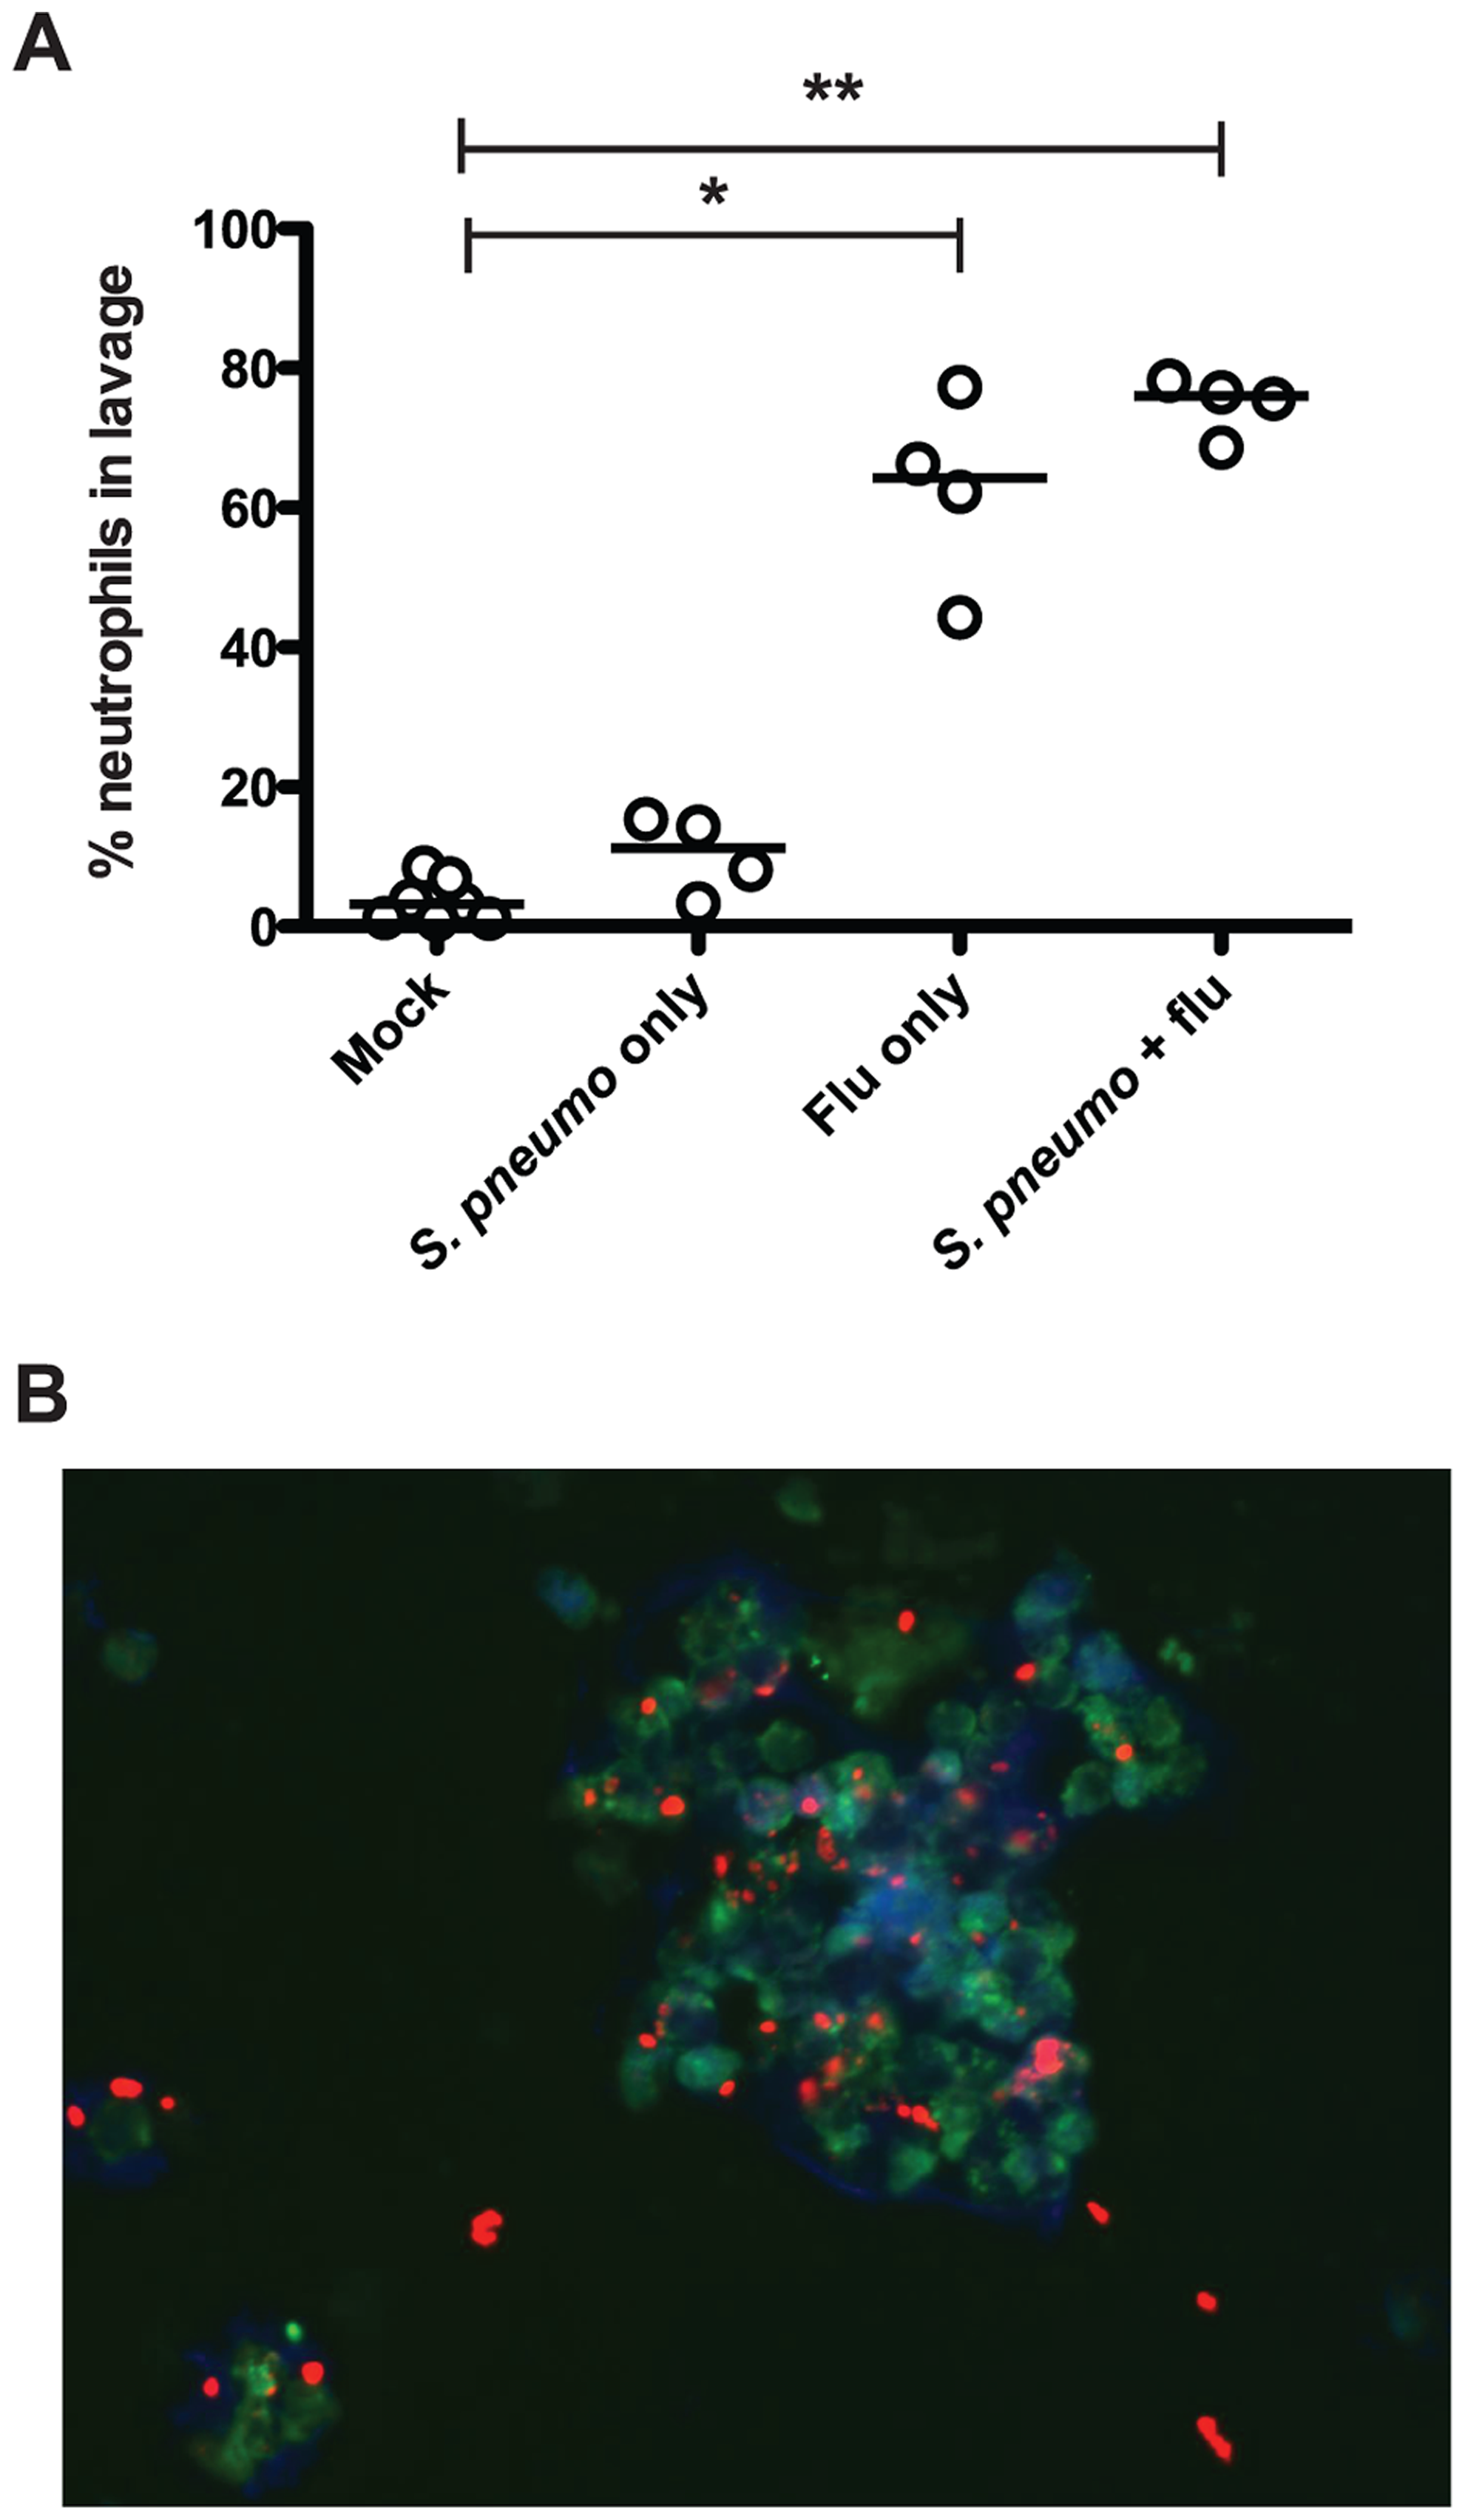 Influenza infection results in neutrophil influx to the nasopharynx.